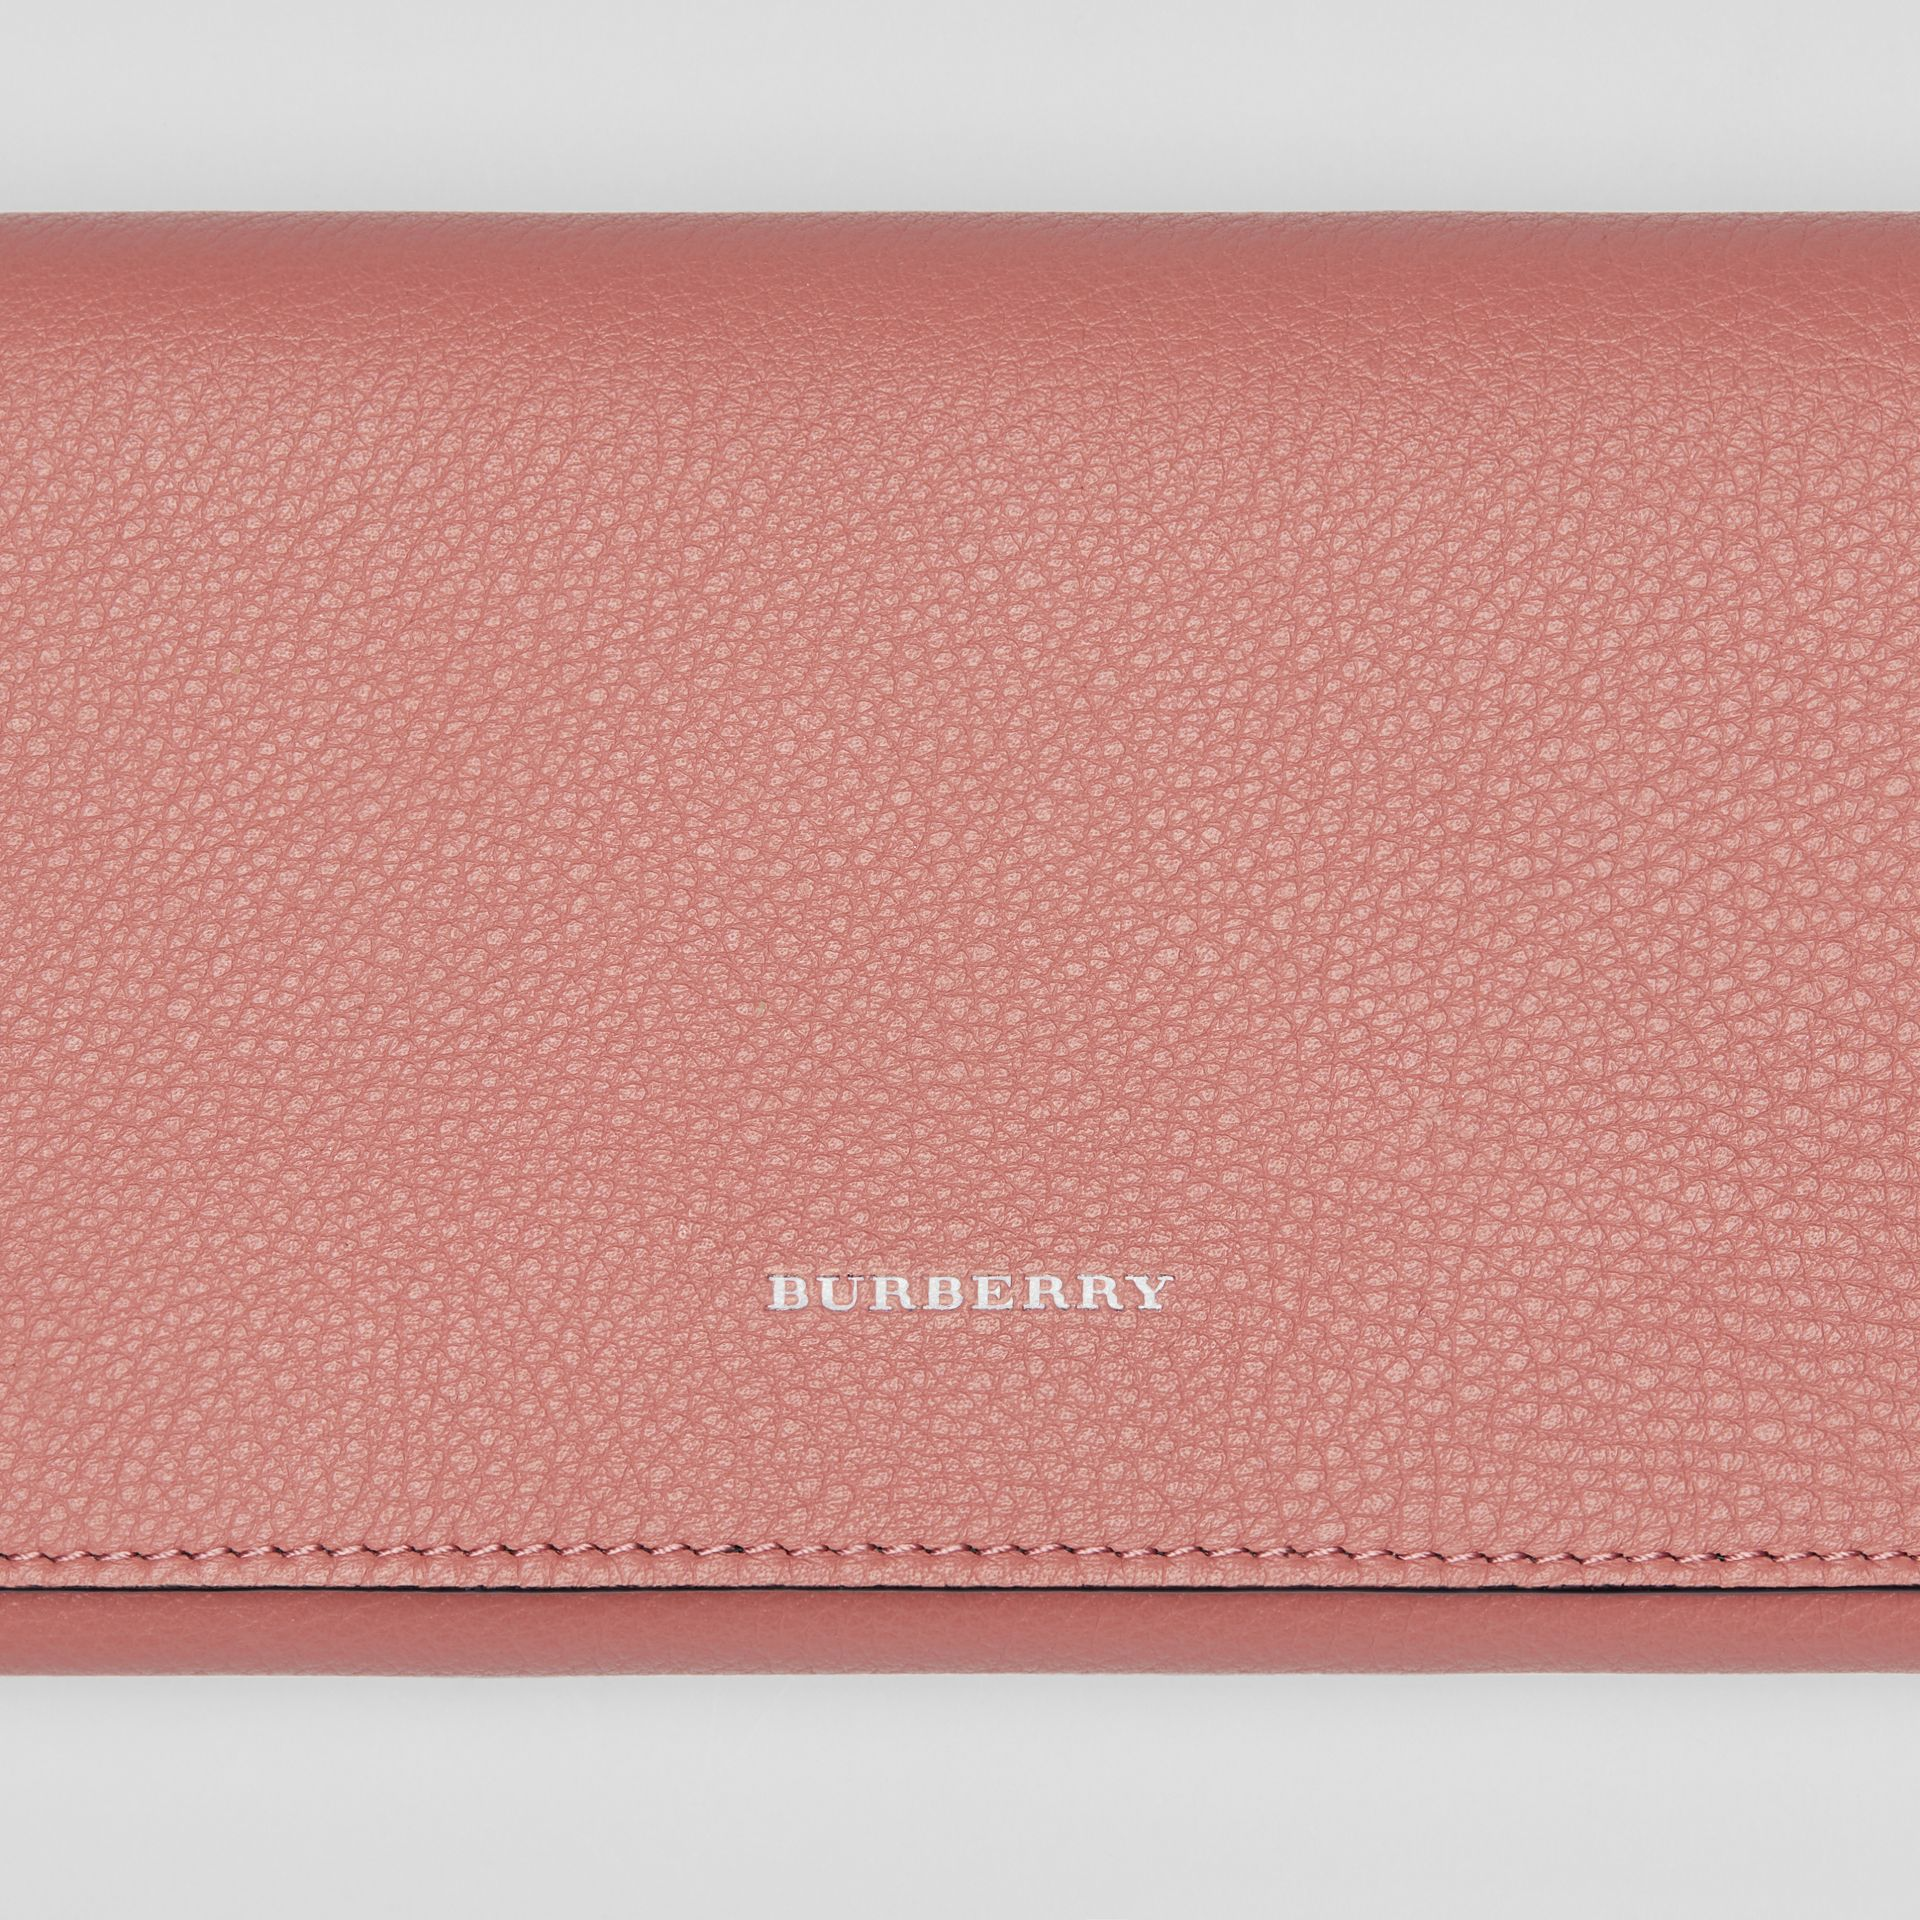 Two-tone Leather Continental Wallet in Dusty Rose - Women | Burberry - gallery image 1